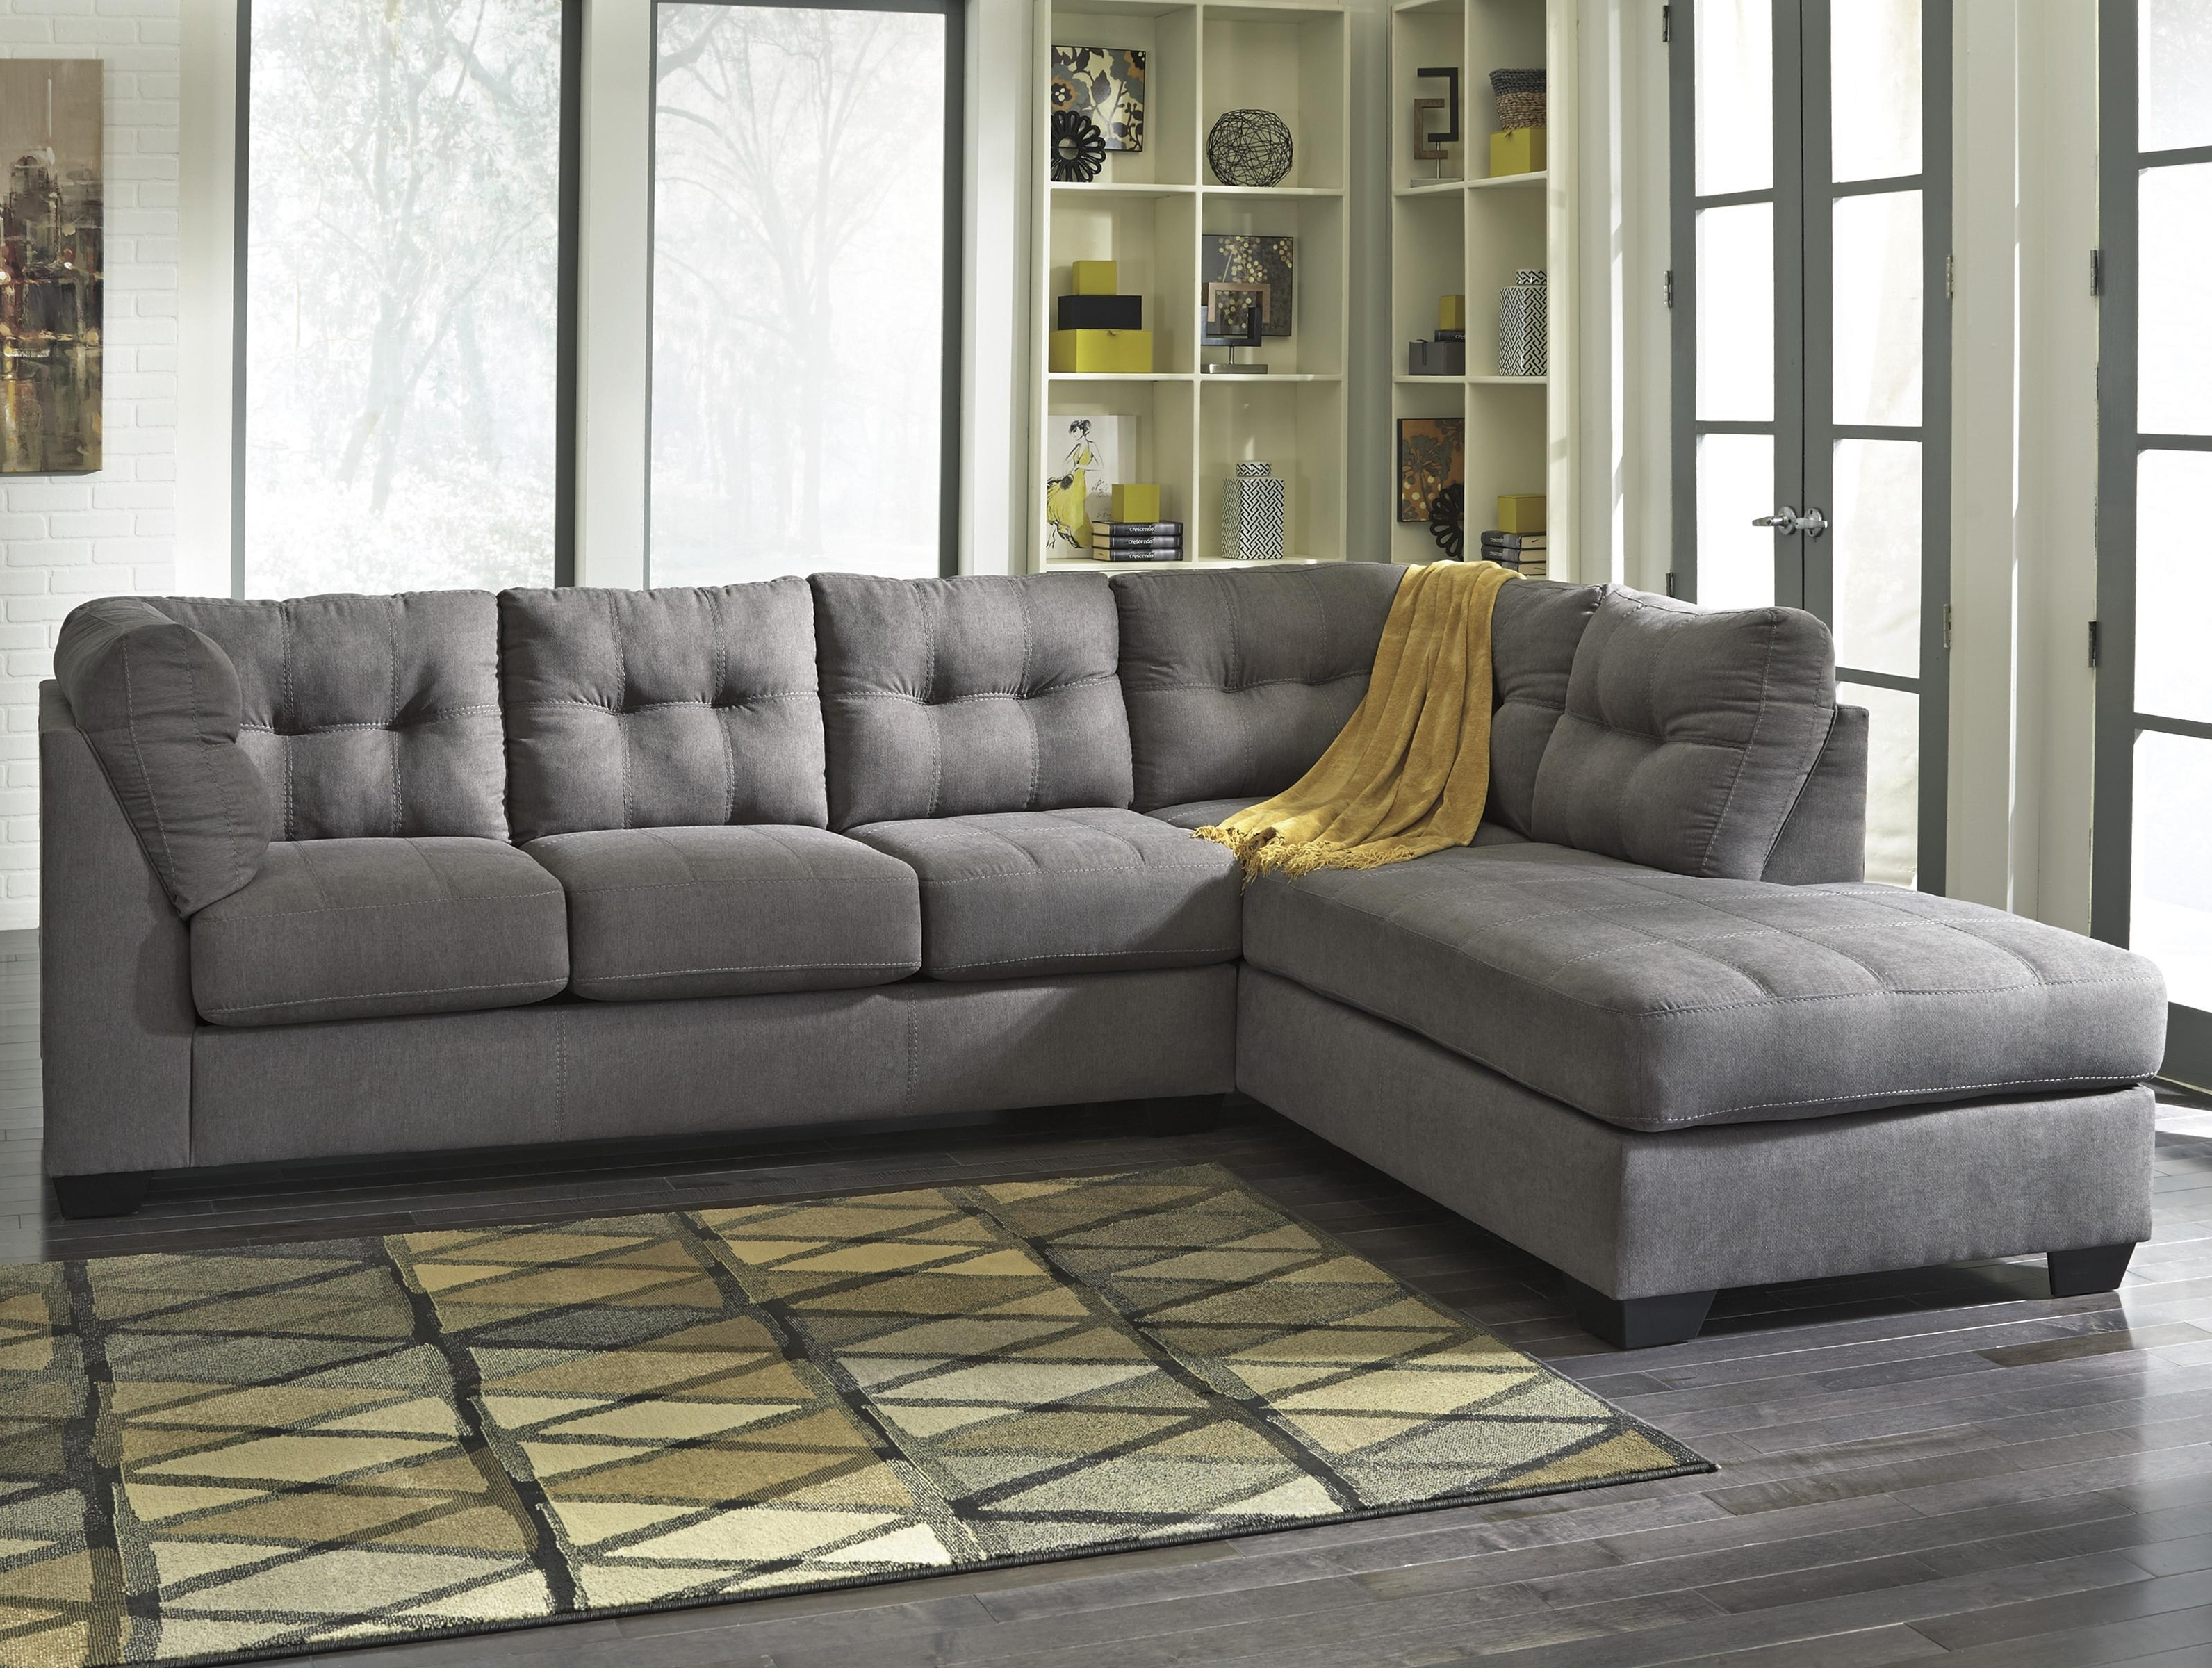 Ashley Furniture Chaise Sofas Regarding Trendy Benchcraft Maier – Charcoal 2 Piece Sectional W/ Sleeper Sofa (View 2 of 15)